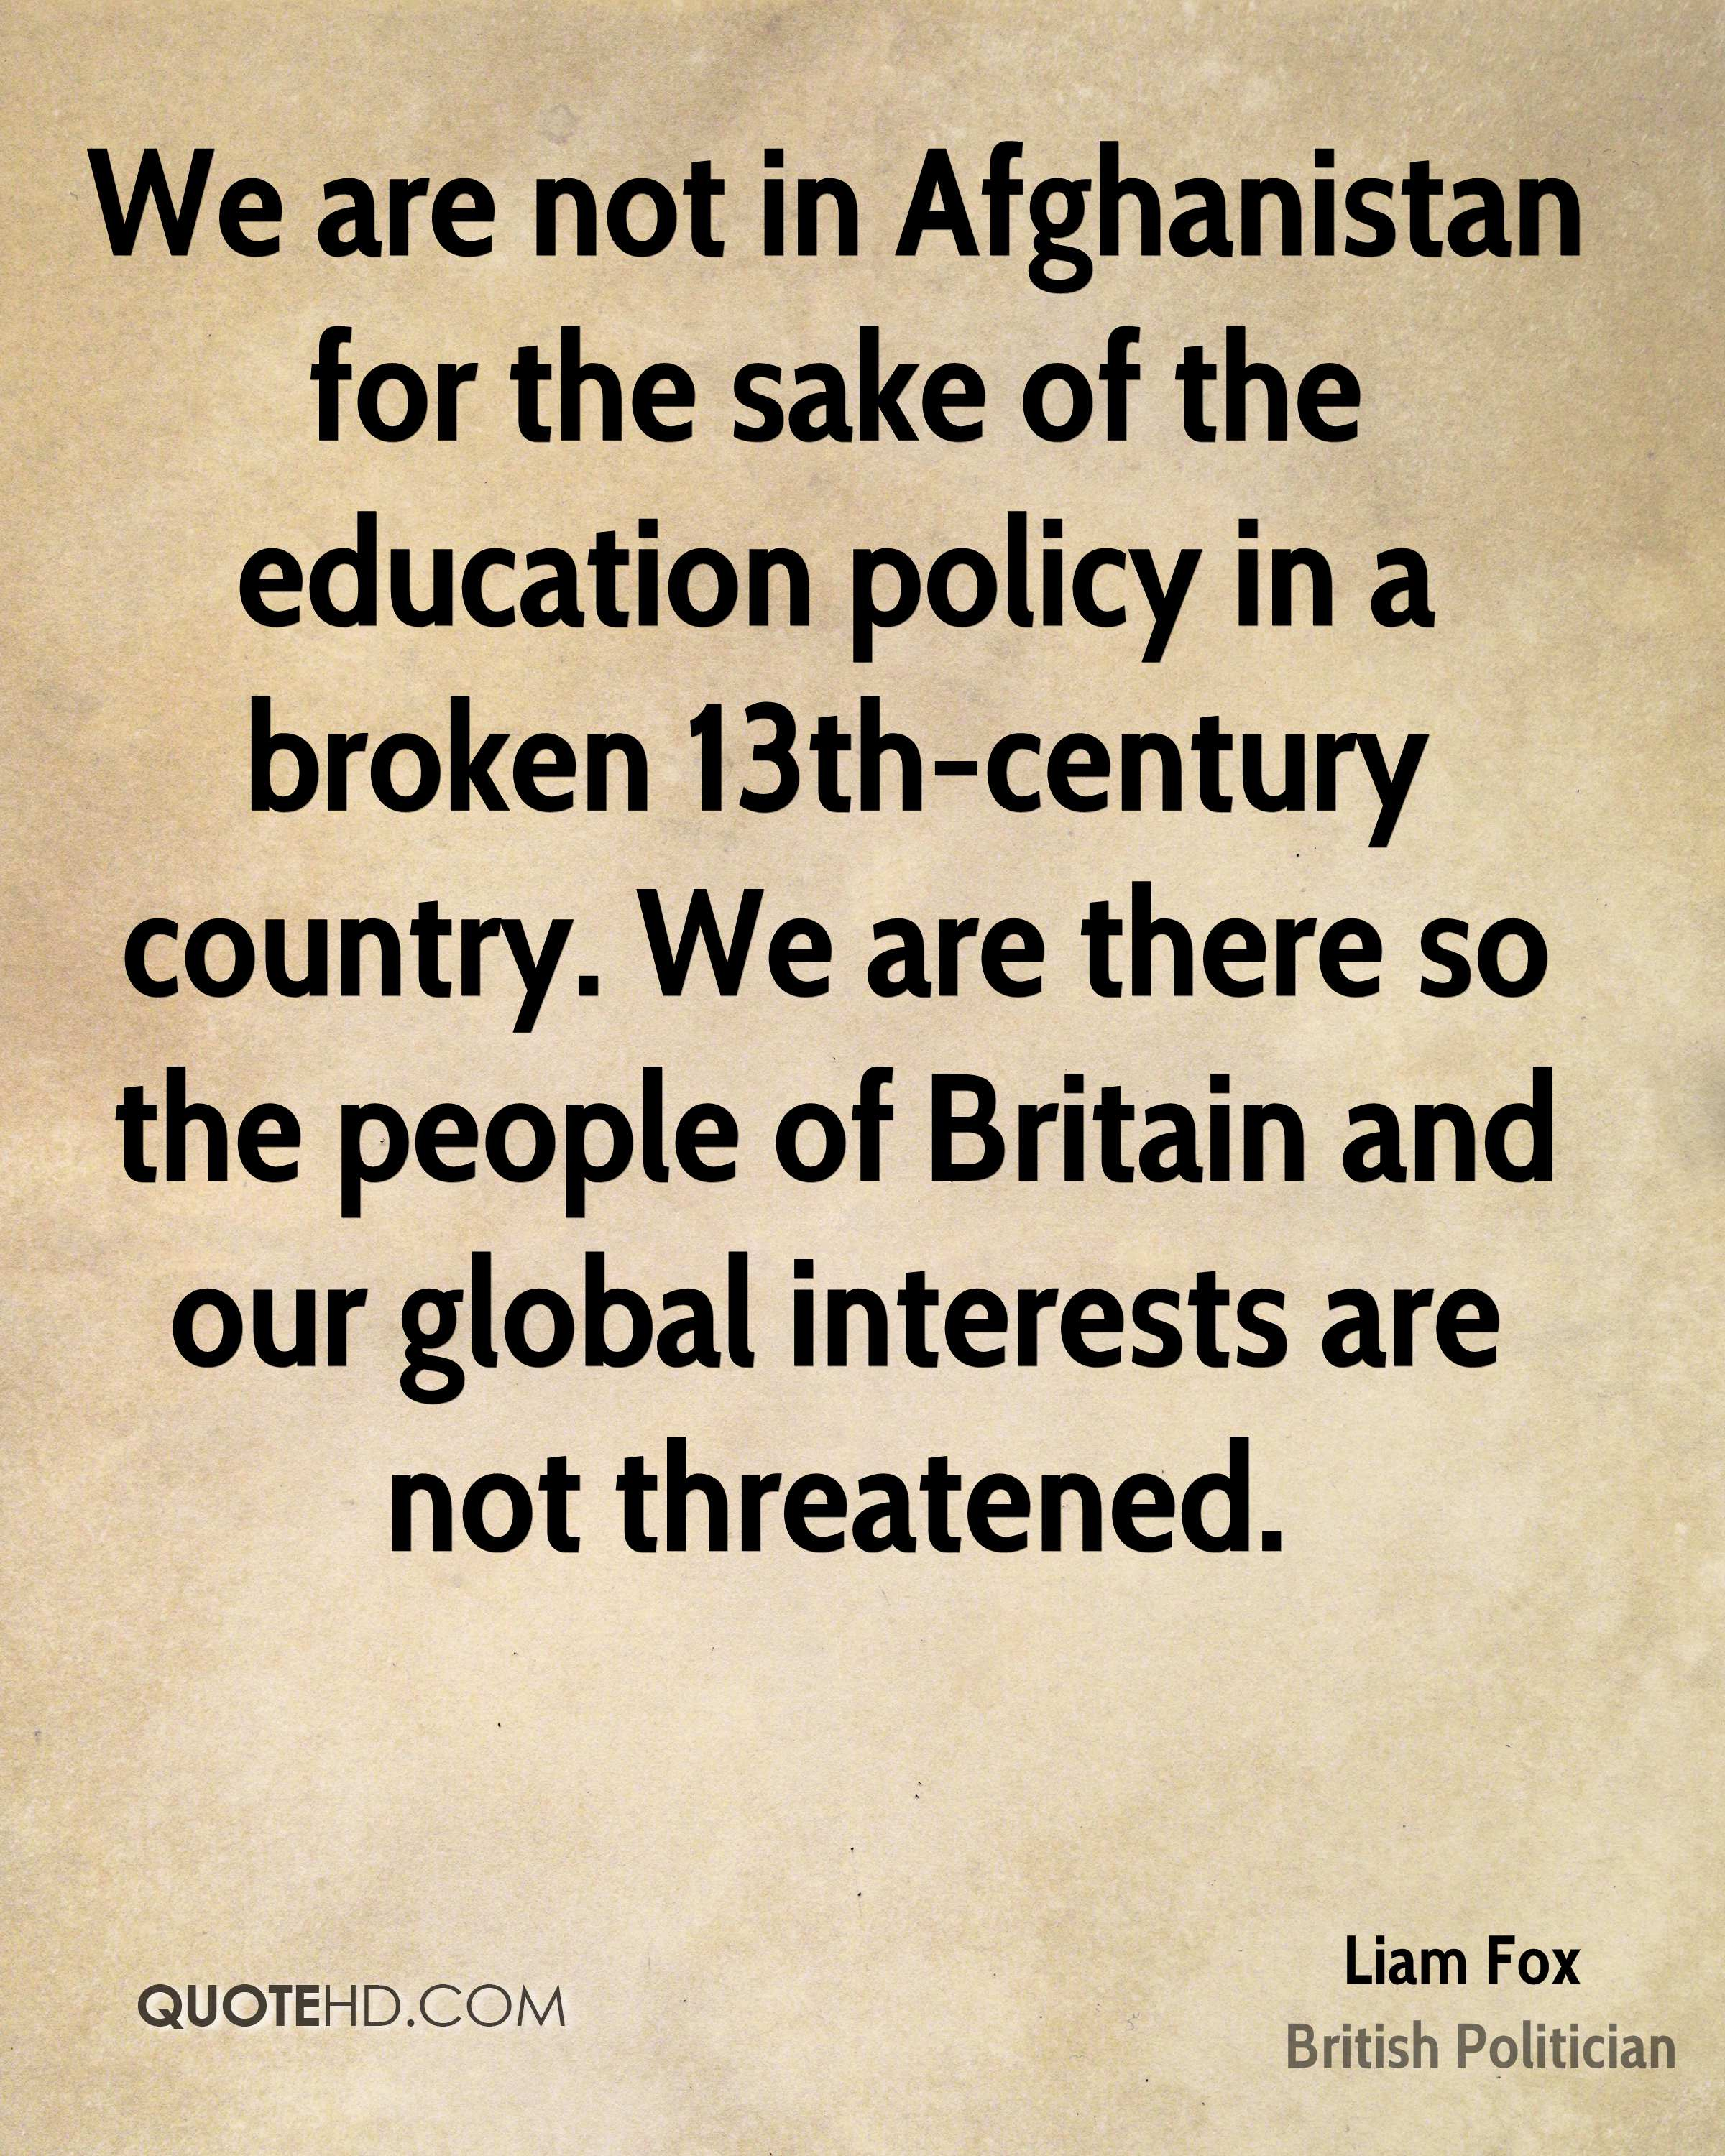 We are not in Afghanistan for the sake of the education policy in a broken 13th-century country. We are there so the people of Britain and our global interests are not threatened.